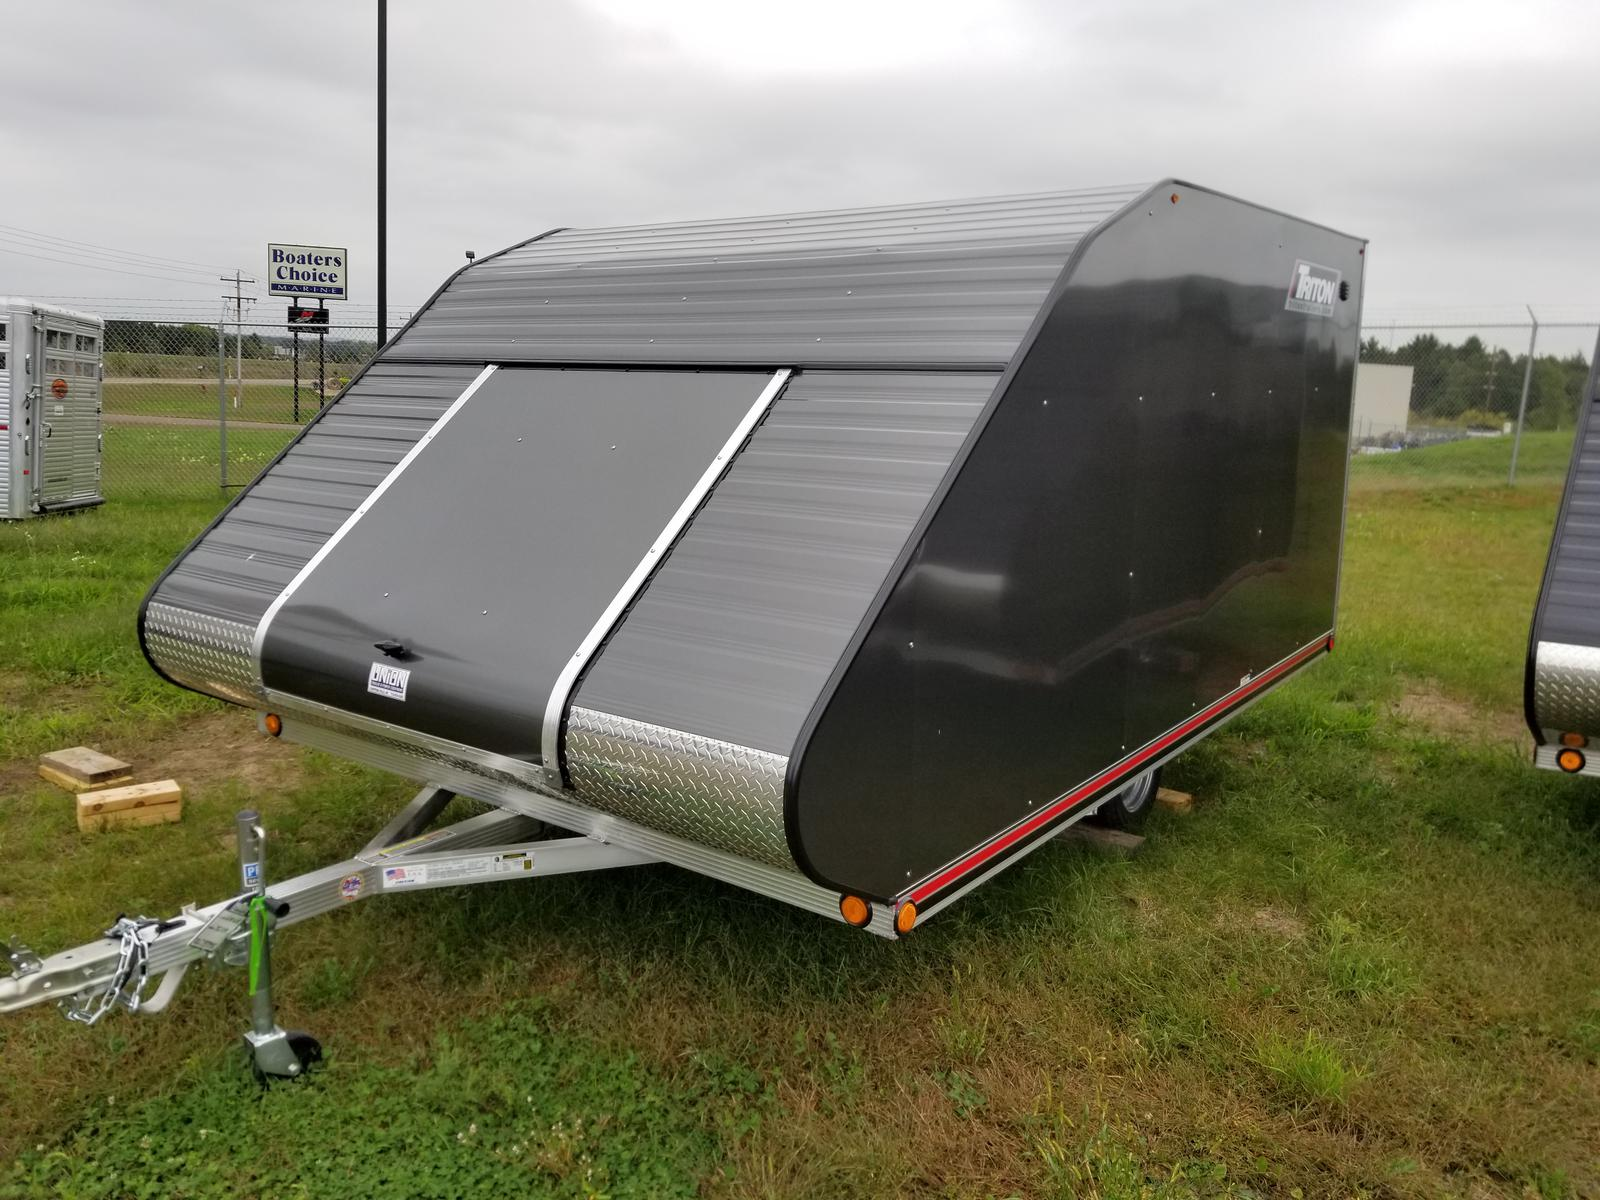 2019 Triton Tc128 2 Place Hybrid Snowmobile Trailer For Sale In Wiring Harness 20180918 172104